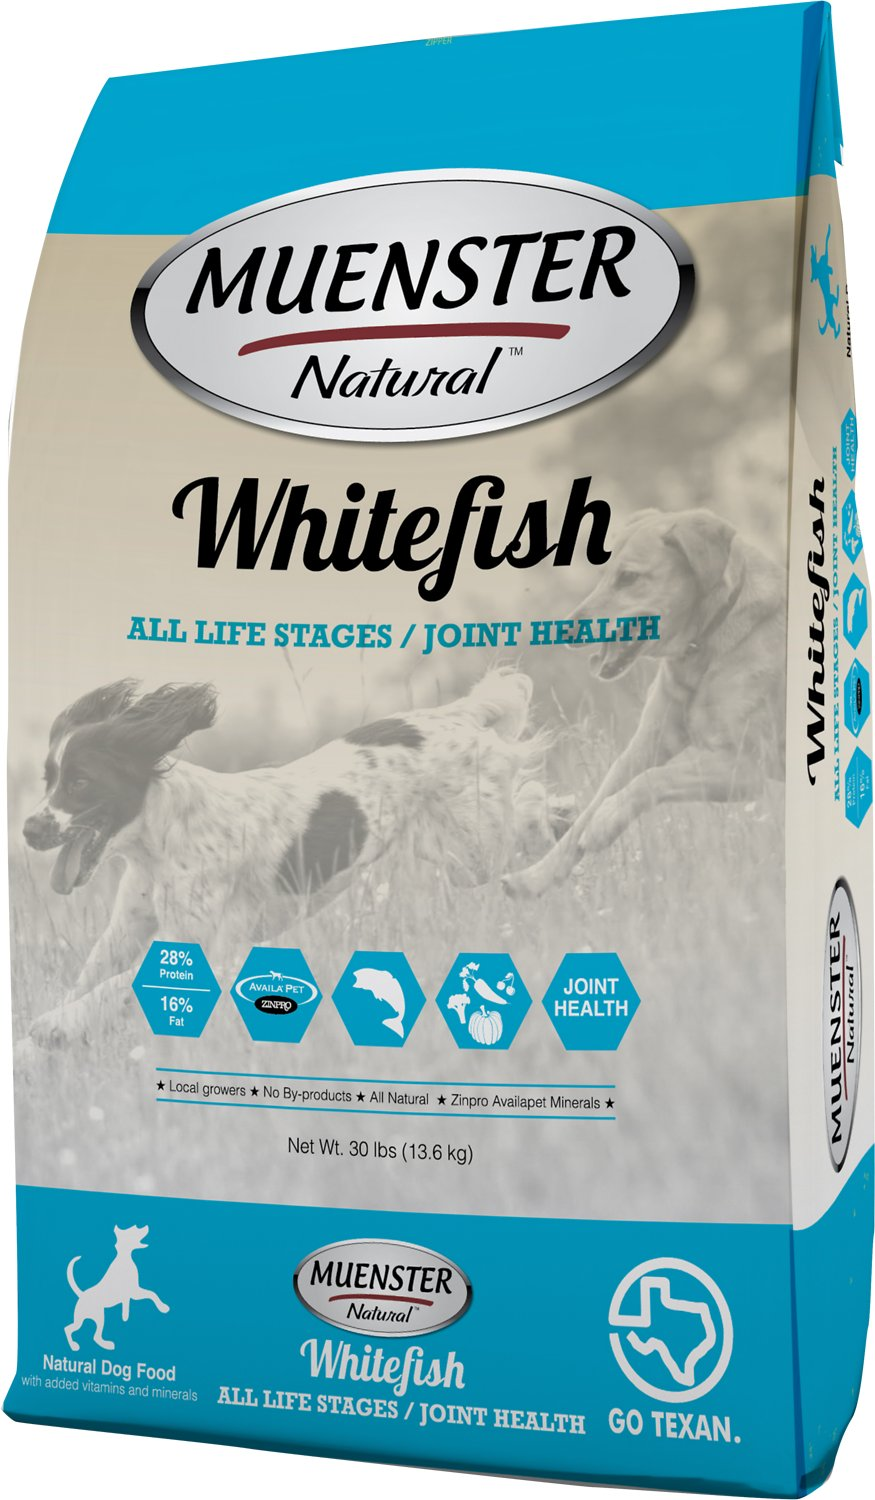 Muenster Whitefish Dog Food